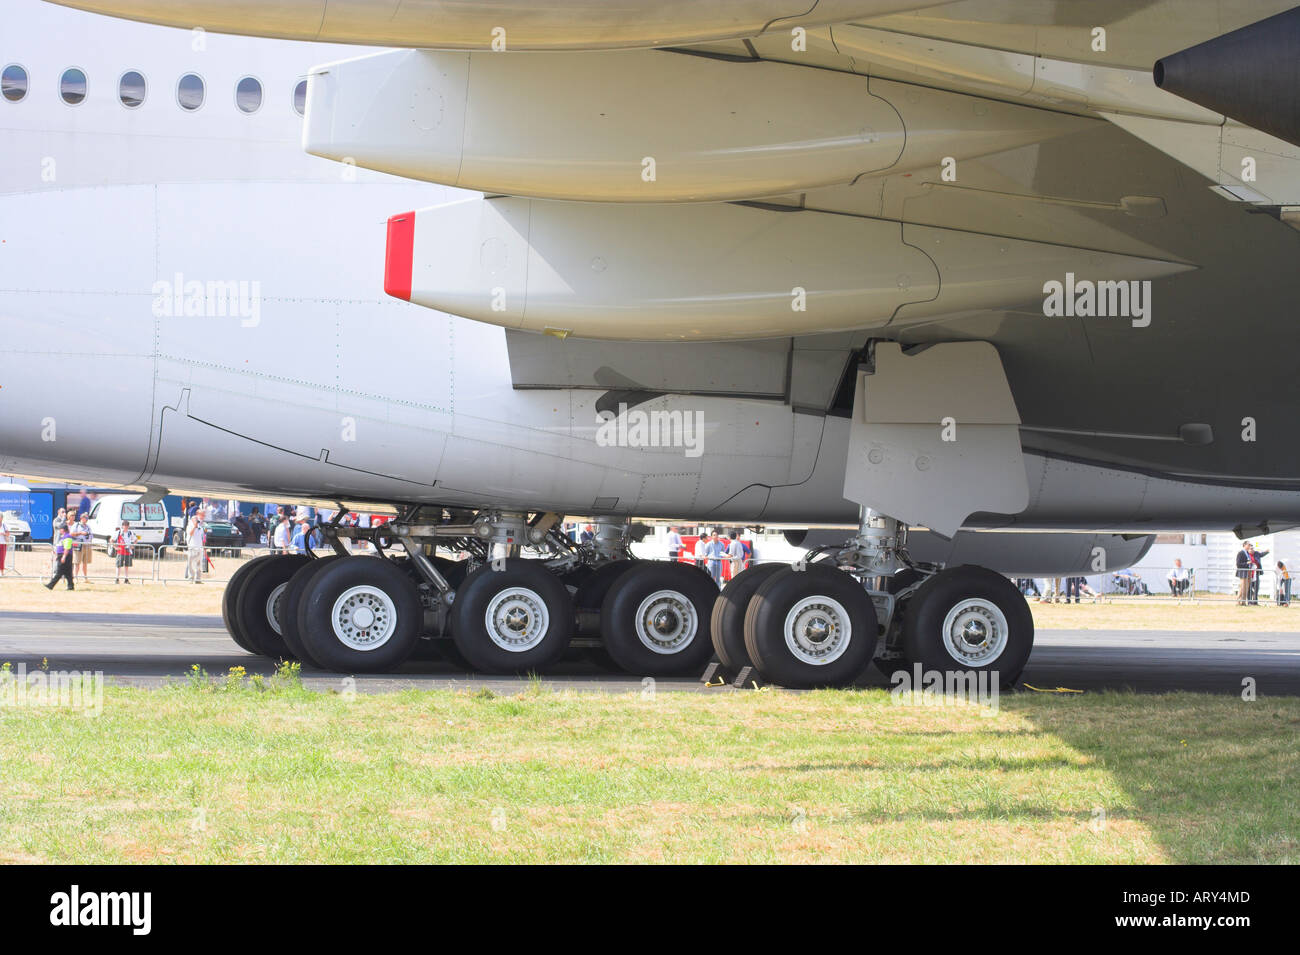 Undercarriage of the Airbus A380 - Stock Image